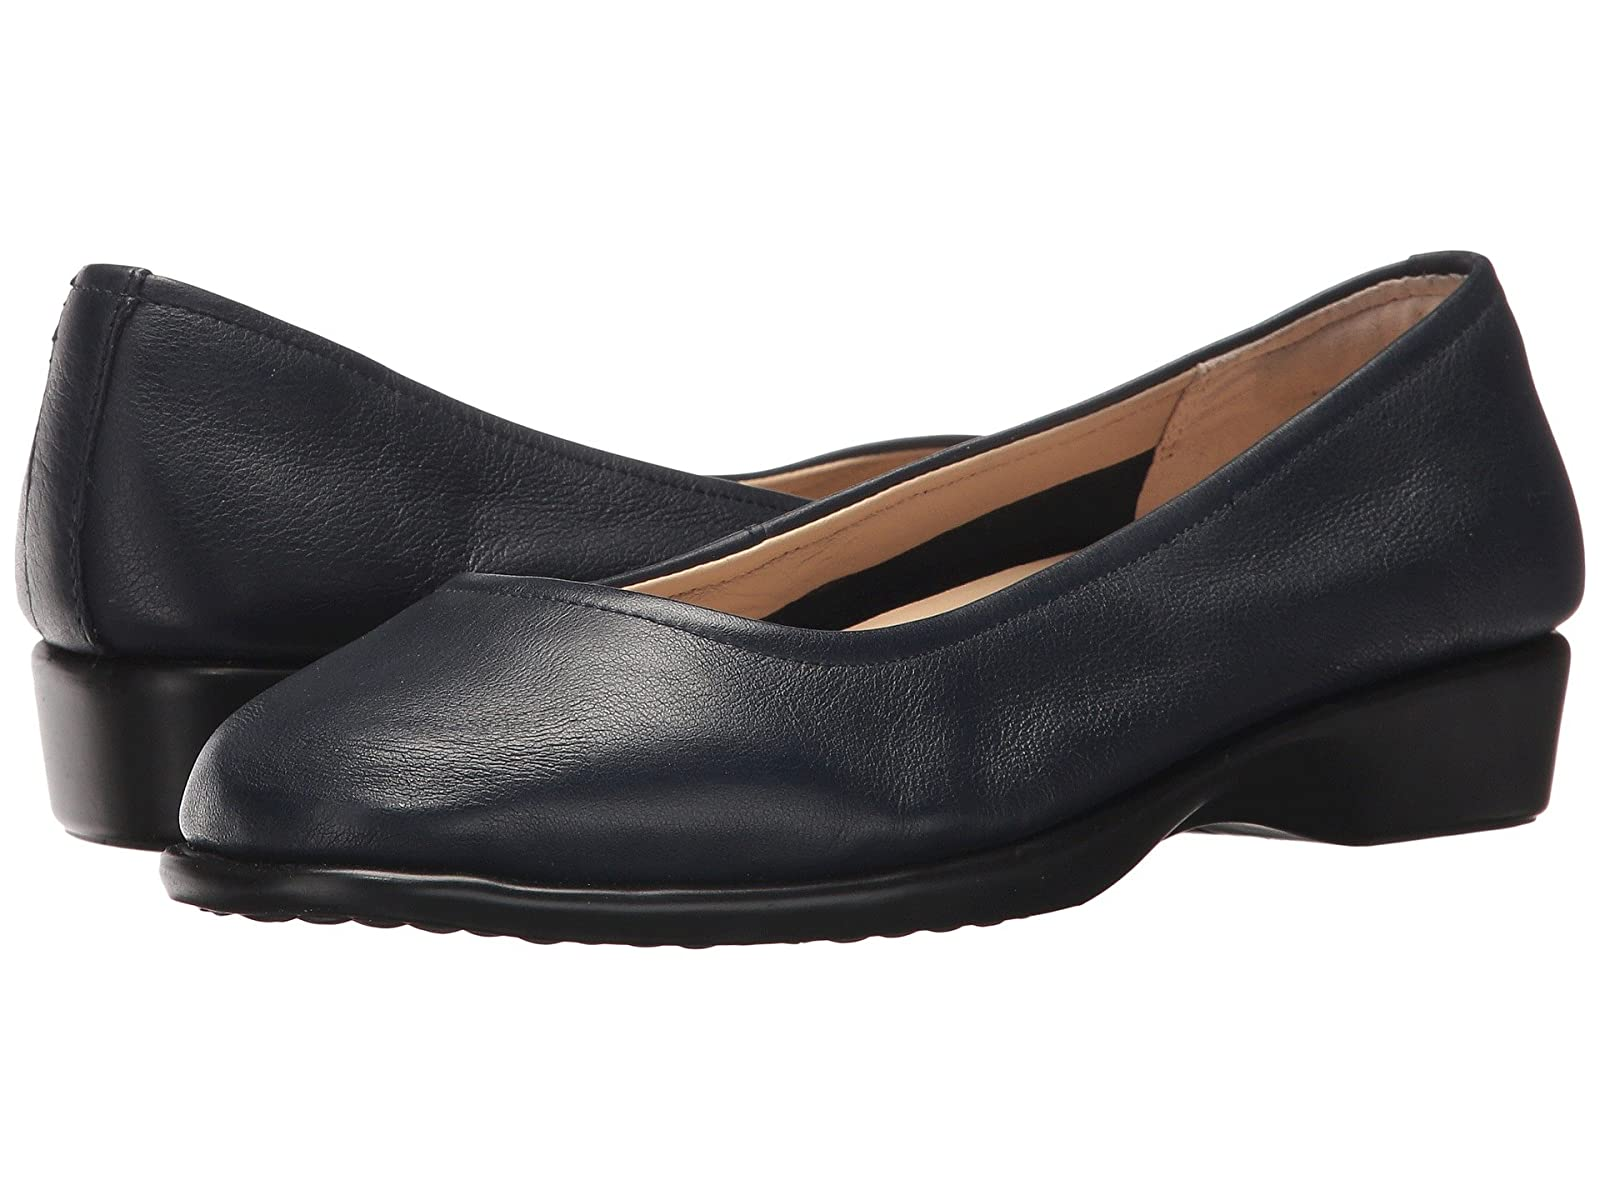 Hush Puppies Tabee ParadiseAtmospheric grades have affordable shoes